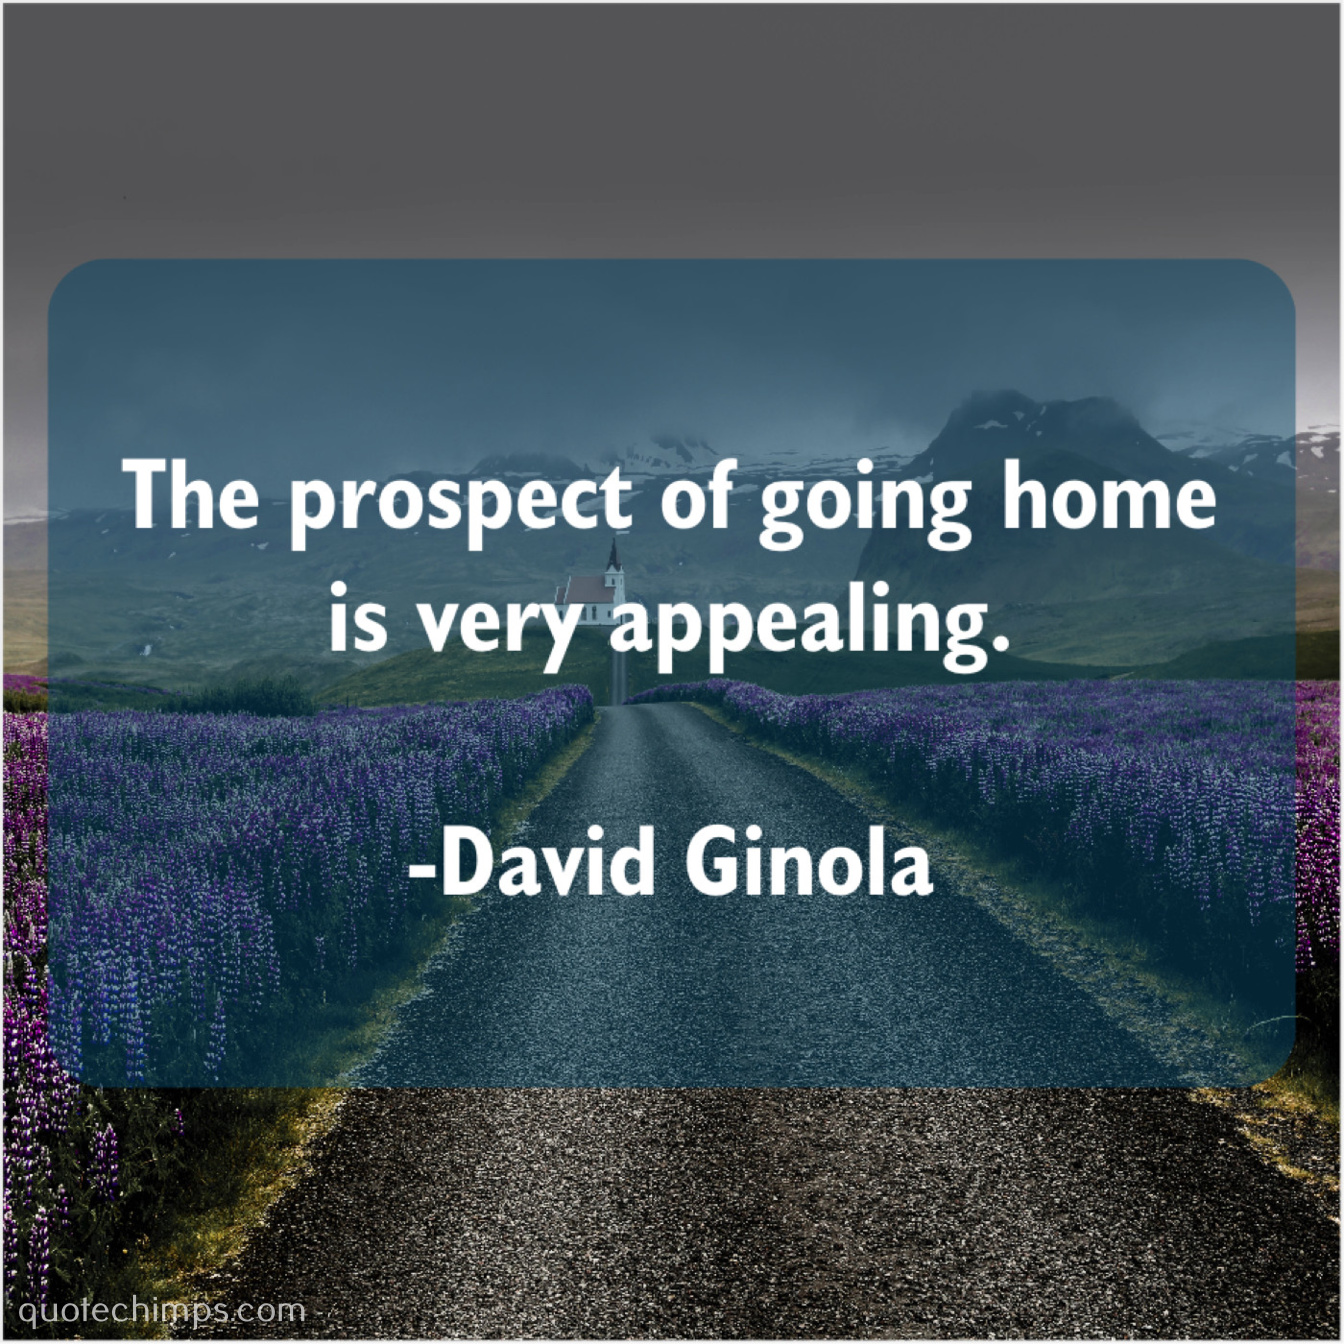 David Ginola The Prospect Of Going Home